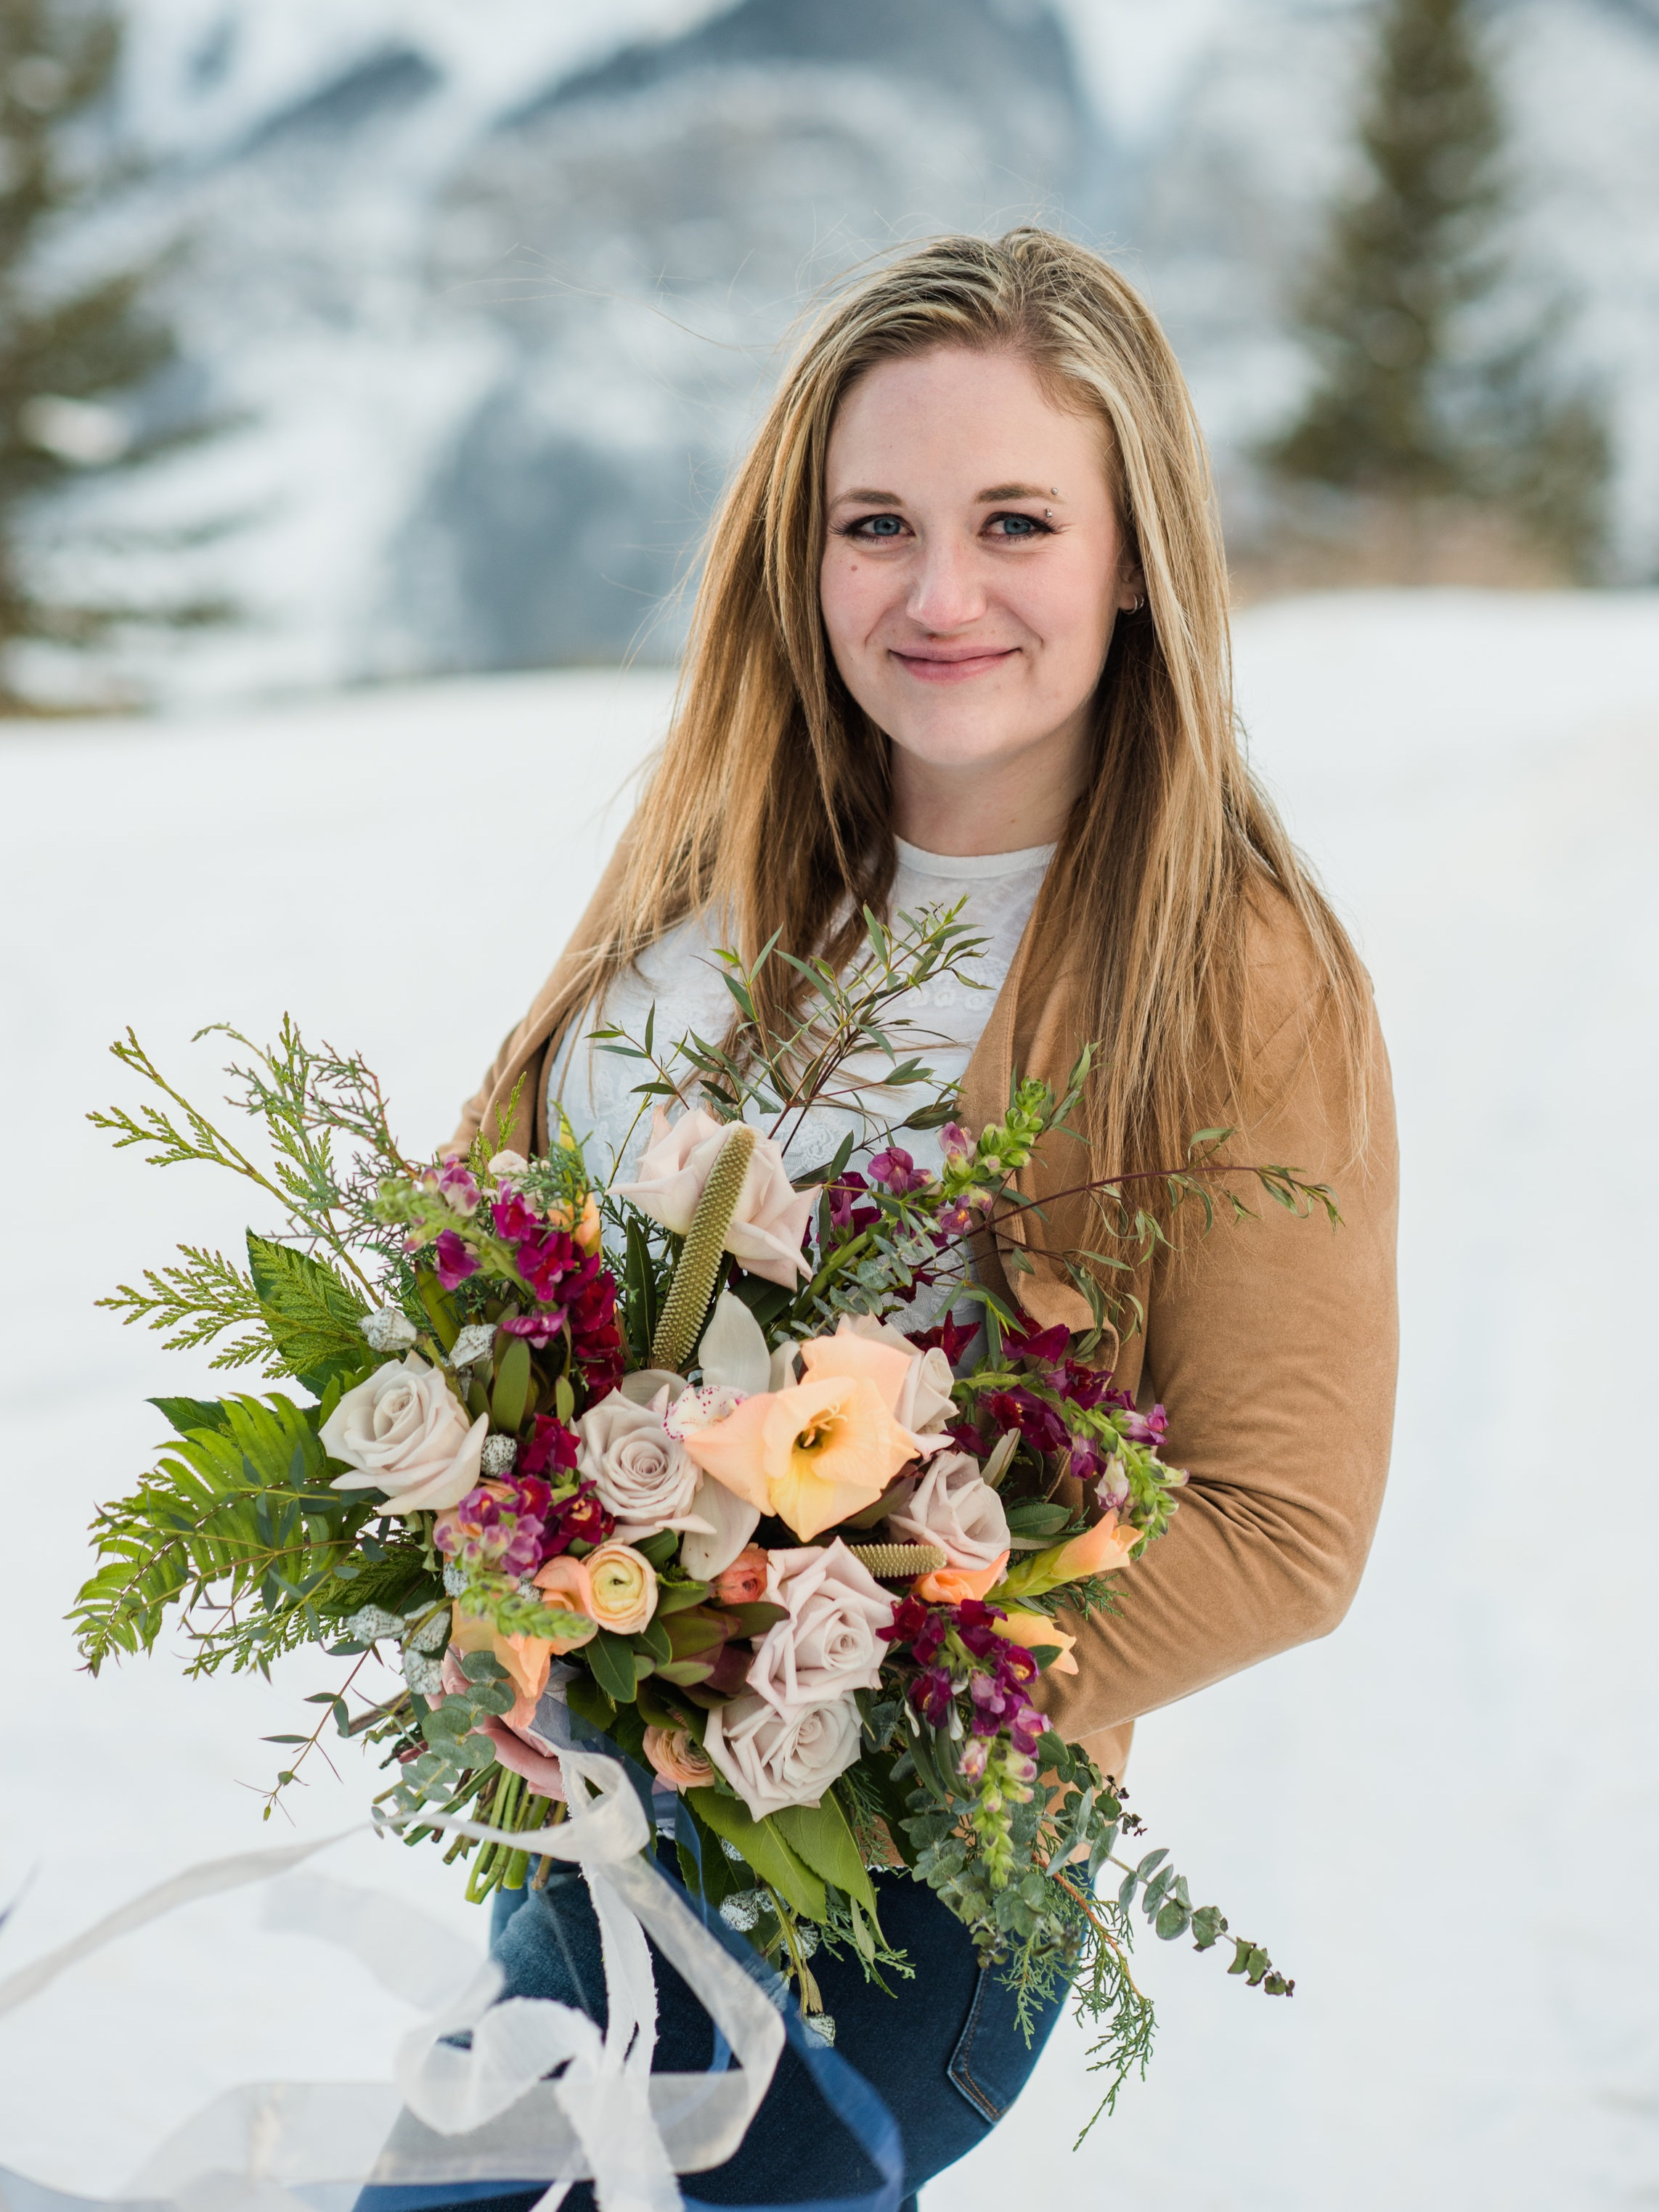 Hi, I'm Fawna! - Perfect name for a florist, am I right?! All kidding aside, I love what I do and I can't wait to work with you!I started my floral career as the owner and operator of Lilac & Lace in Innisfail but it didn't take long to realize that my true passion was wedding design. Plus… the mountains were calling! I am beyond excited to be serving this little slice of paradise known as the Bow Valley!My personal style is very woodsy and laid back, but whether you're a boho bride with a gypsy soul our an uptown sophisticate I'd love to help you make your floral dreams a reality.